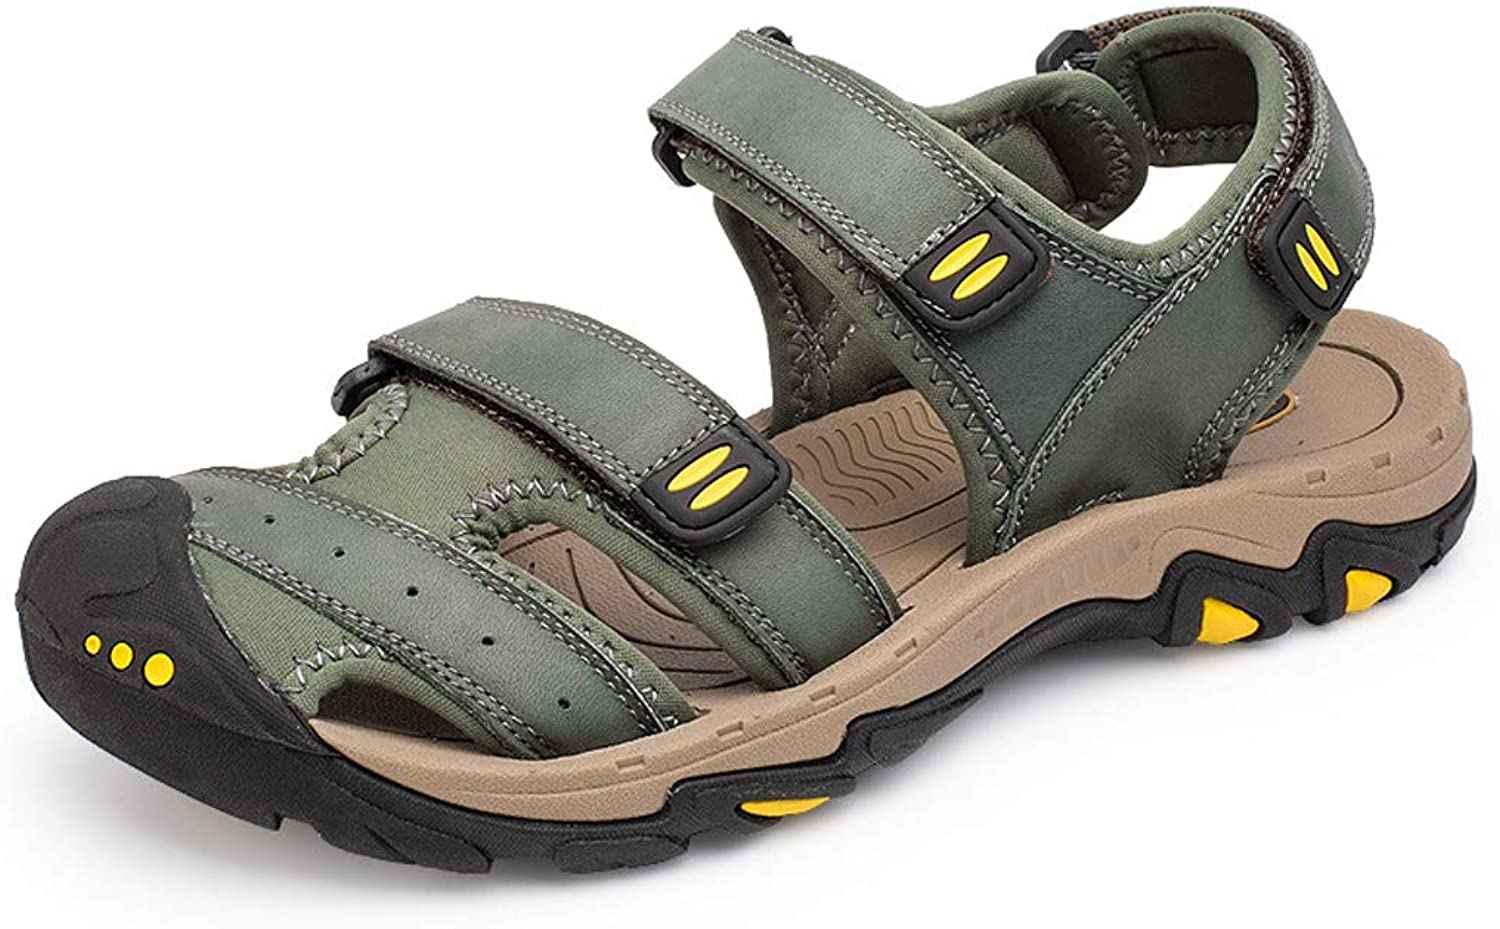 Men's Sporty Outdoor Sandal shoes,Men's Leather Beach shoes Breathable Casual Sandals Velcro Off-Road Sandals Waterproof